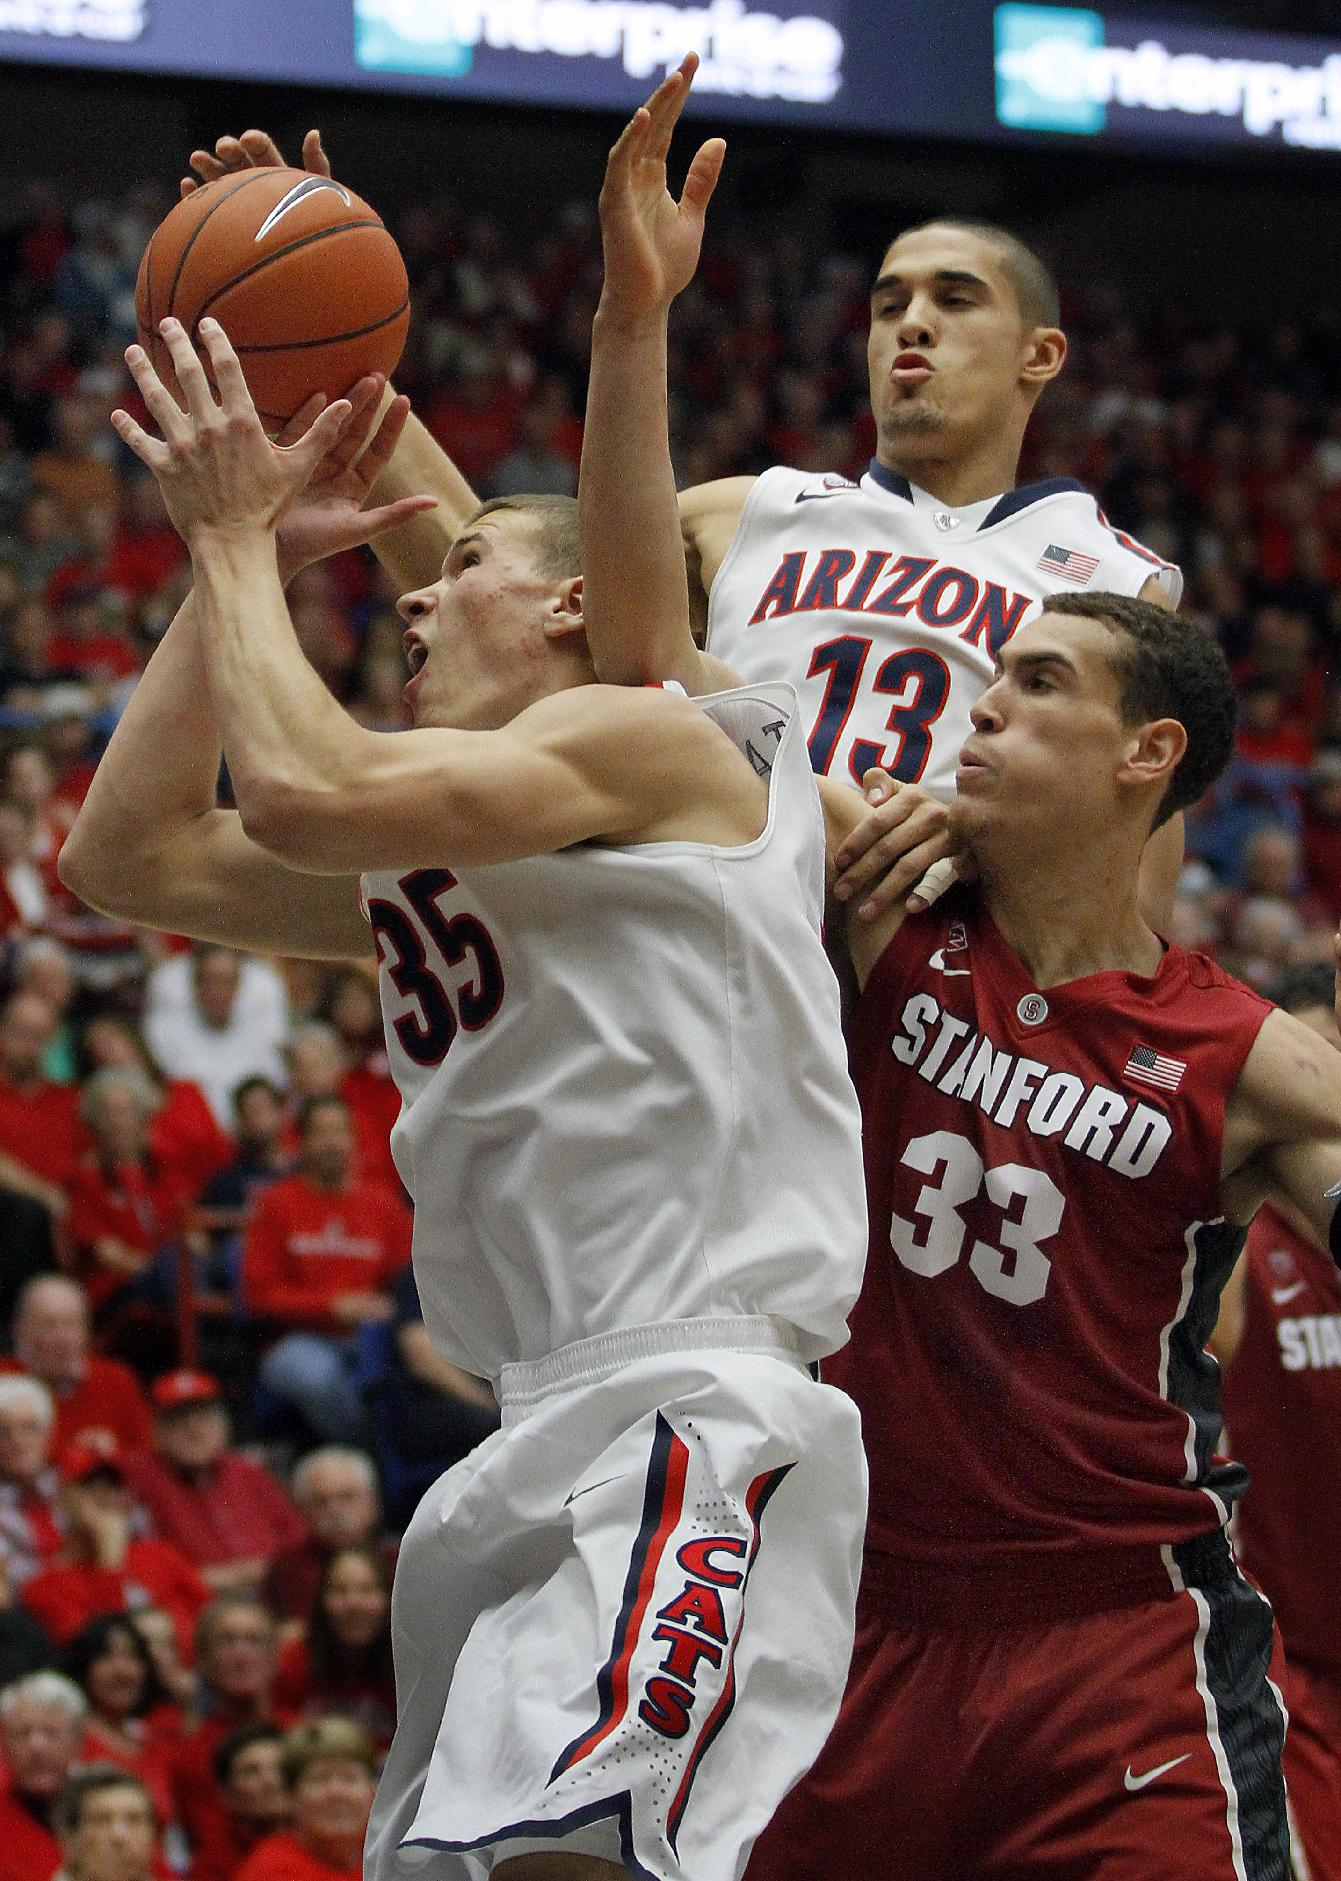 Arizona's Kaleb Tarczewski (35) and Nick Johnson (13) battle Stanford's Dwight Powell (33) for a rebound in the first half of an NCAA college basketball game, Sunday, March 2, 2014 in Tucson, Ariz